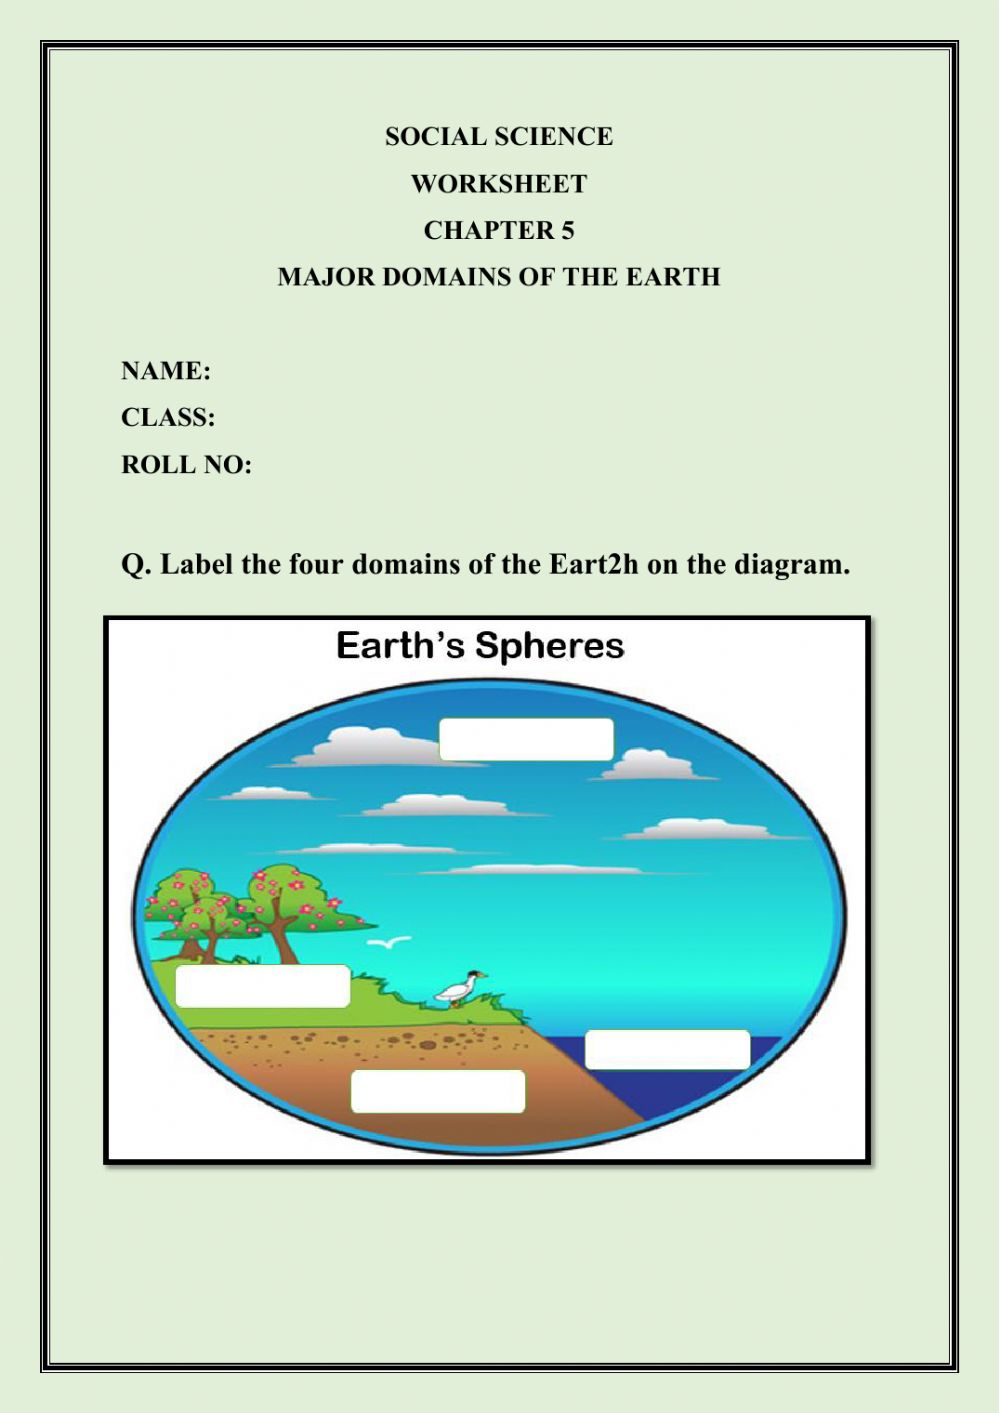 hight resolution of Major Domains of the Earth worksheet